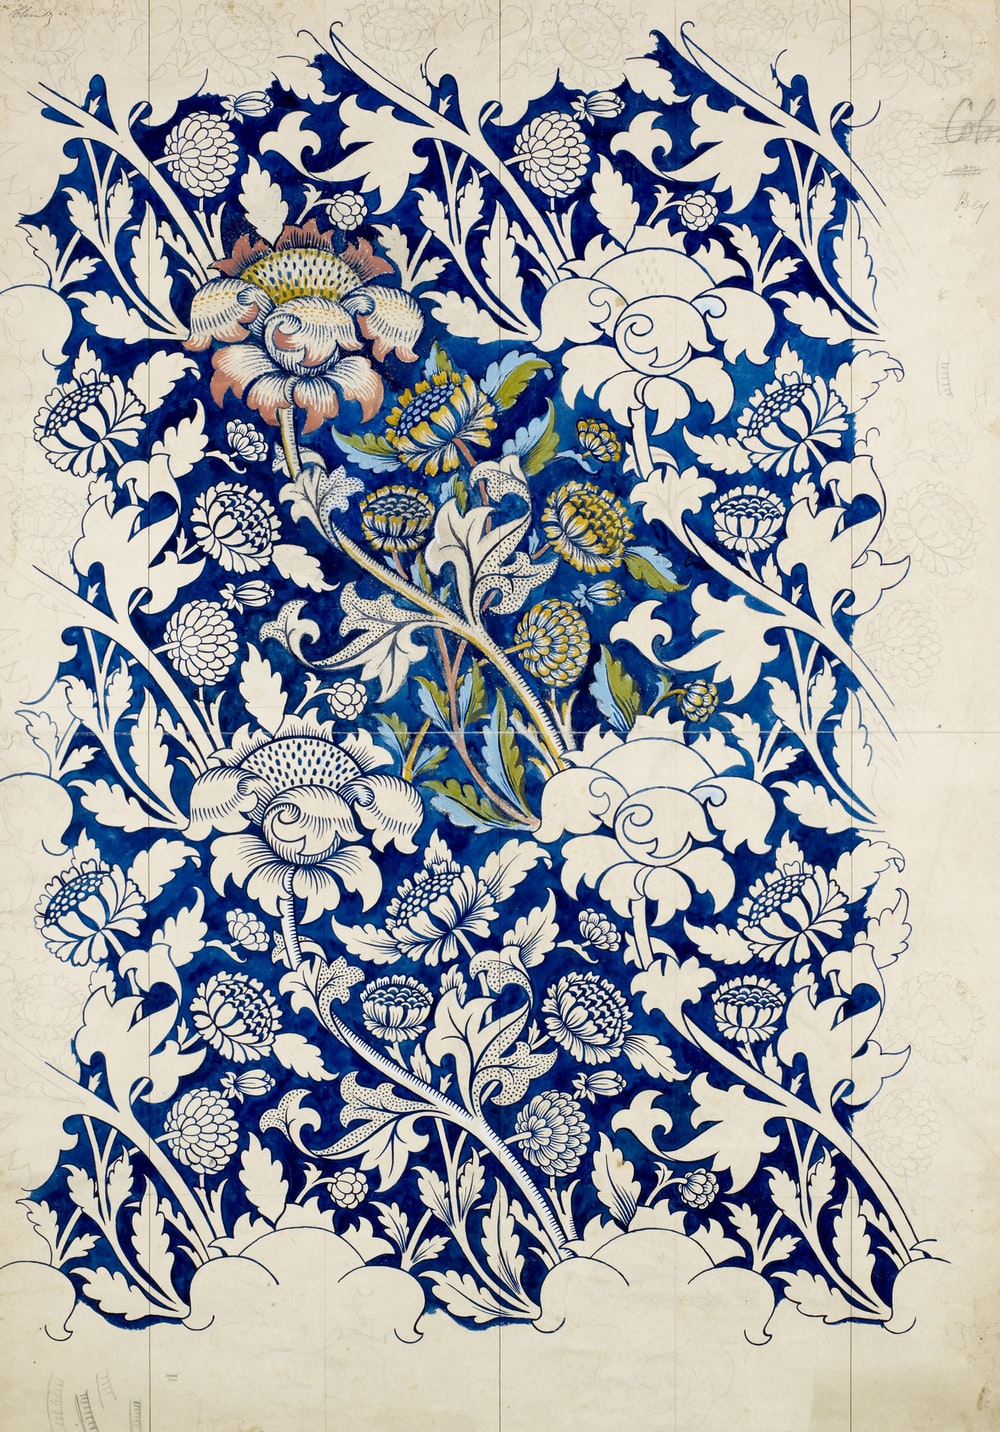 blue and white floral logo